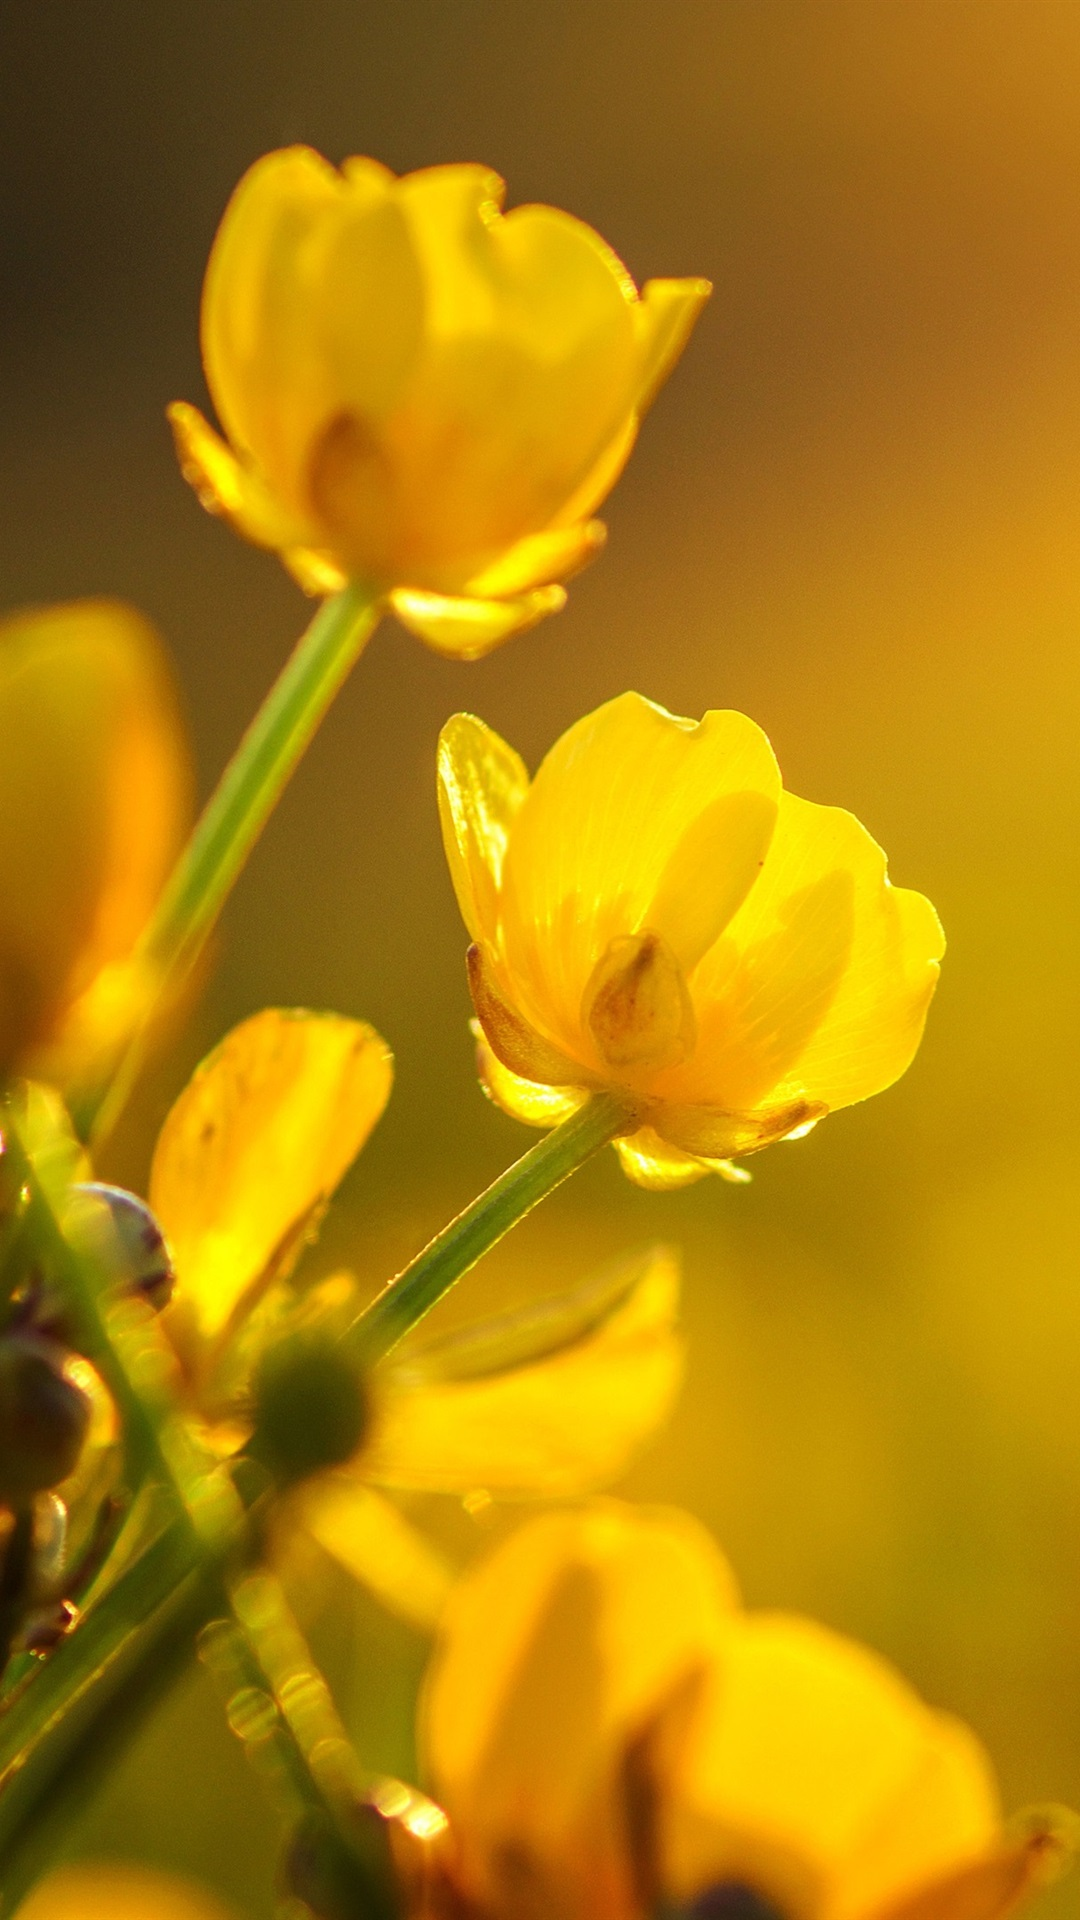 Yellow Buttercups Flowers 1080x1920 Iphone 8766s Plus Wallpaper